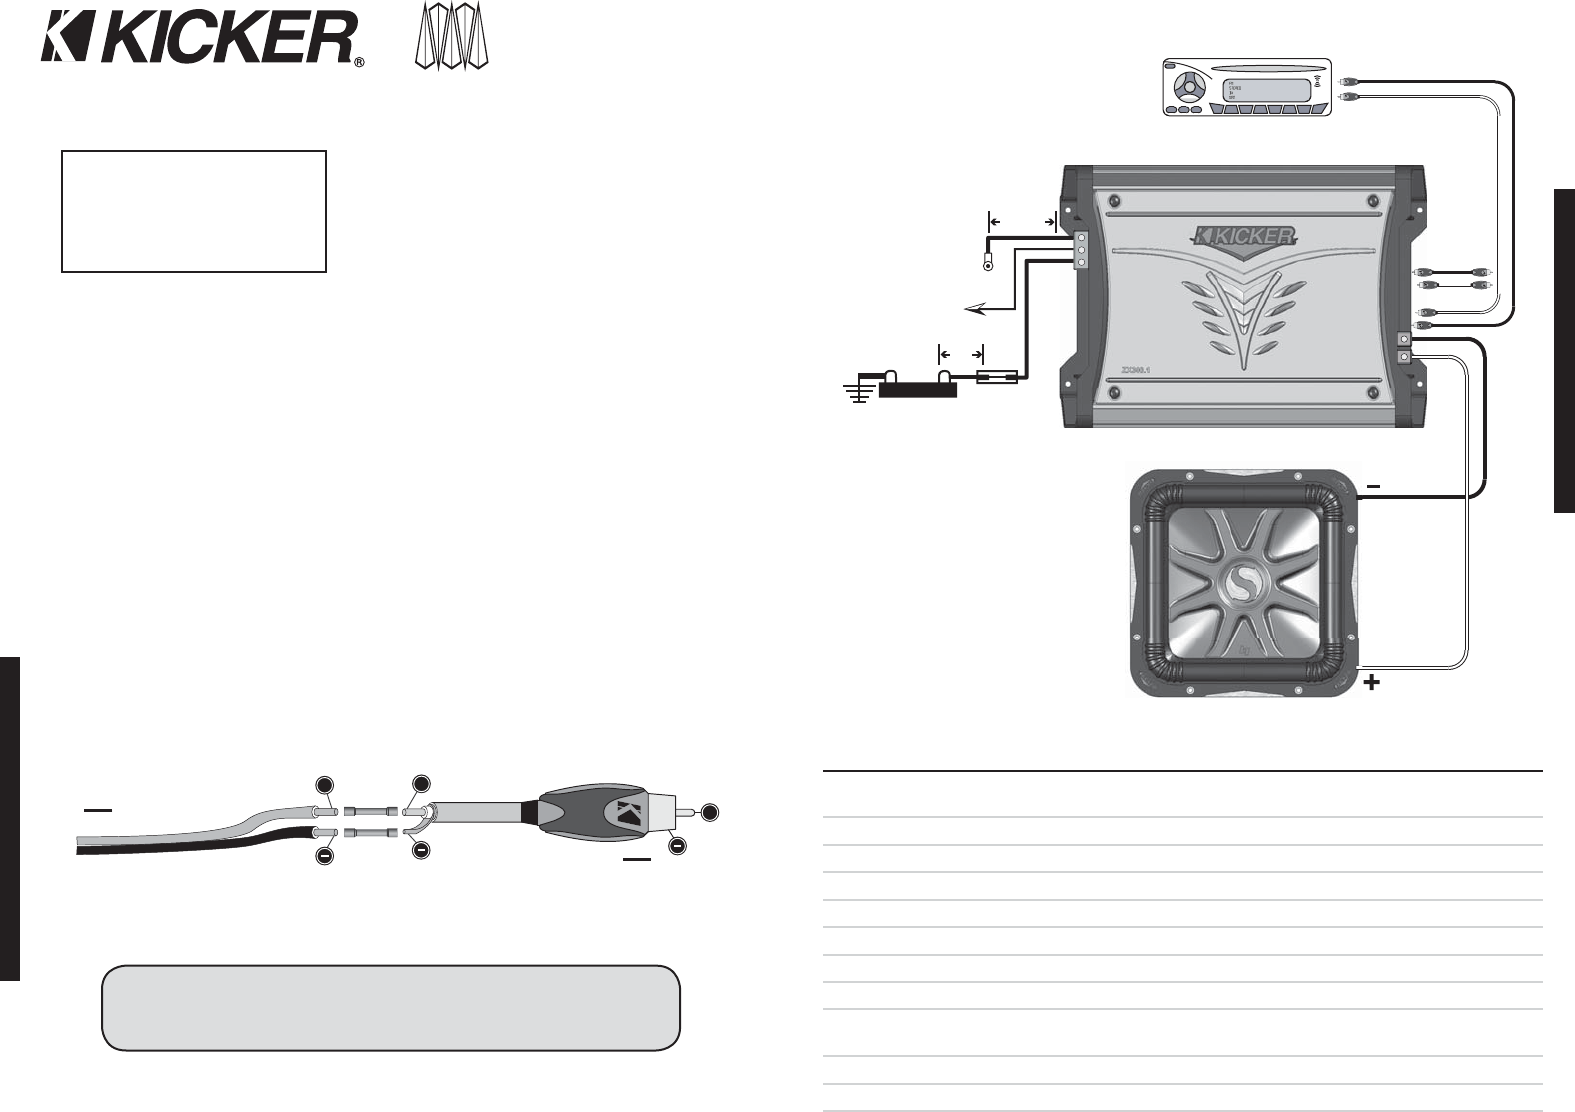 Diagram Collection Kicker Wiring Diagram - More Maps, Diagram And ...